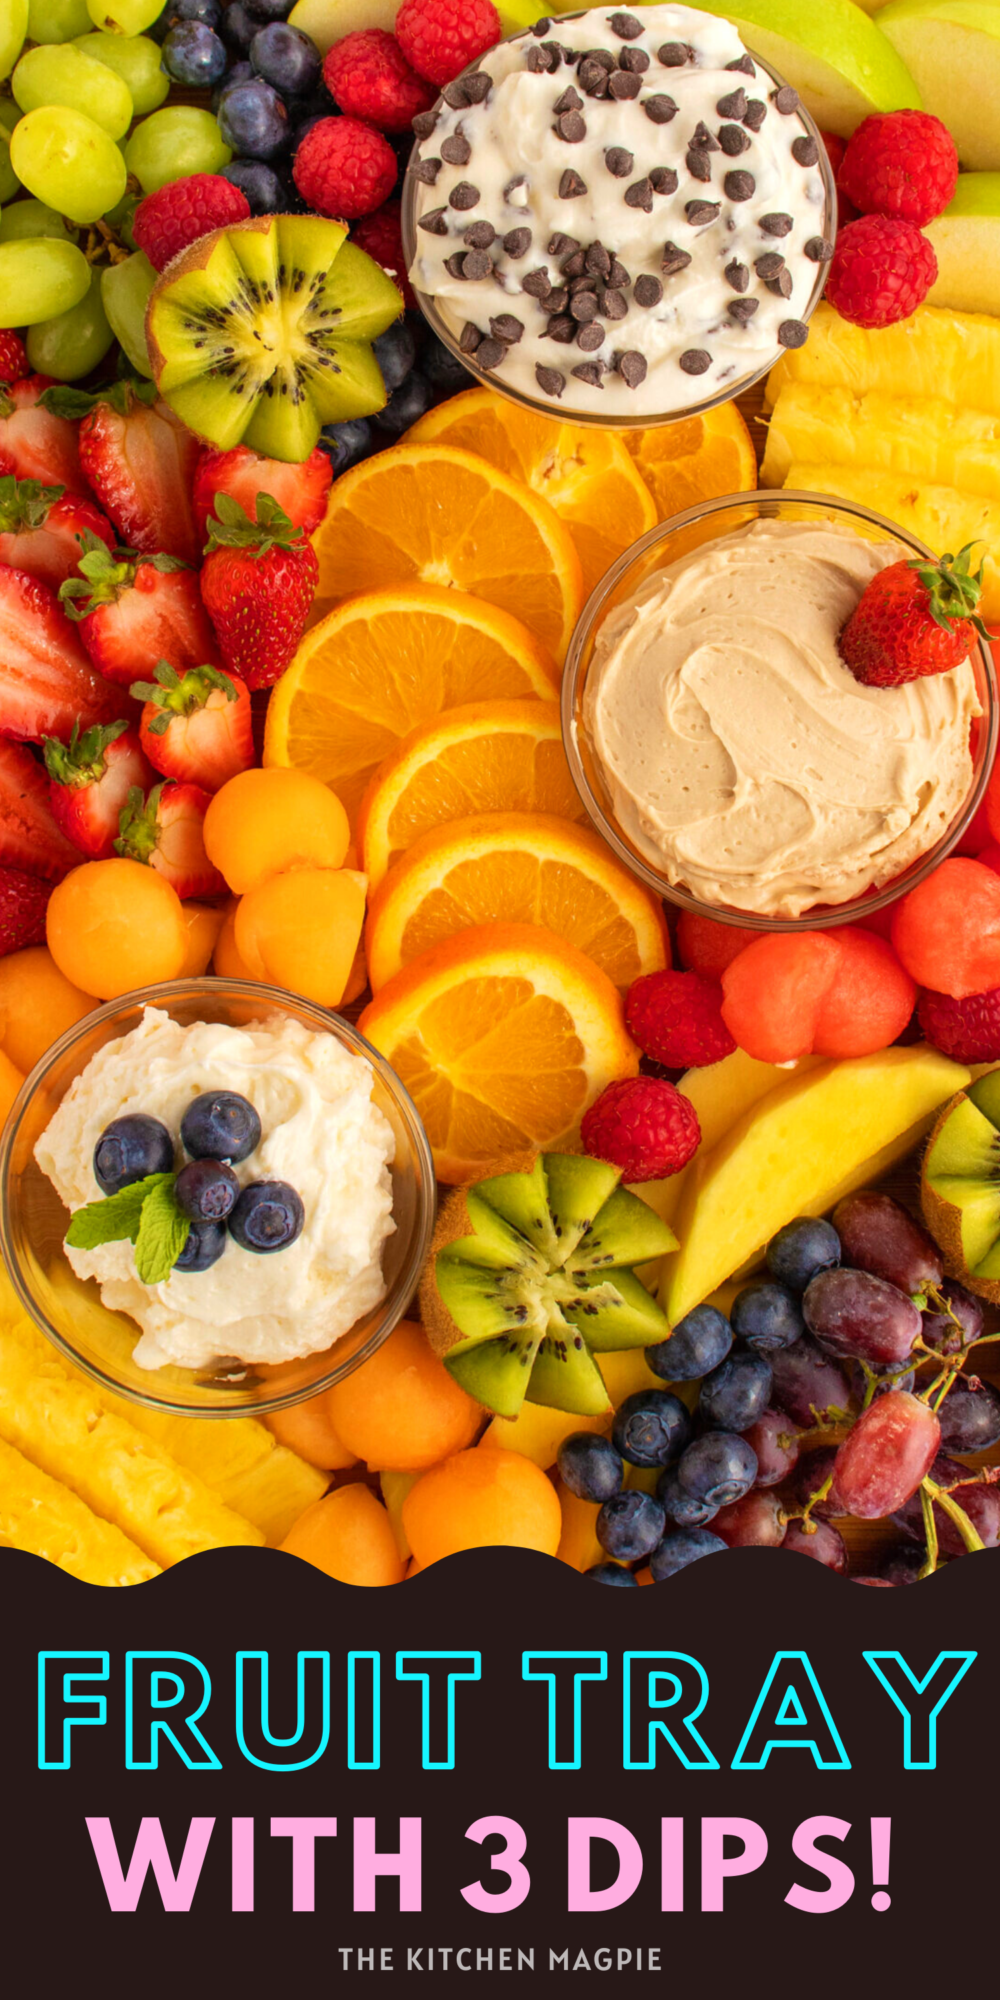 How to prepare fruit for a fresh fruit platter, and three delicious recipes for different fruit dips to serve on the platter.